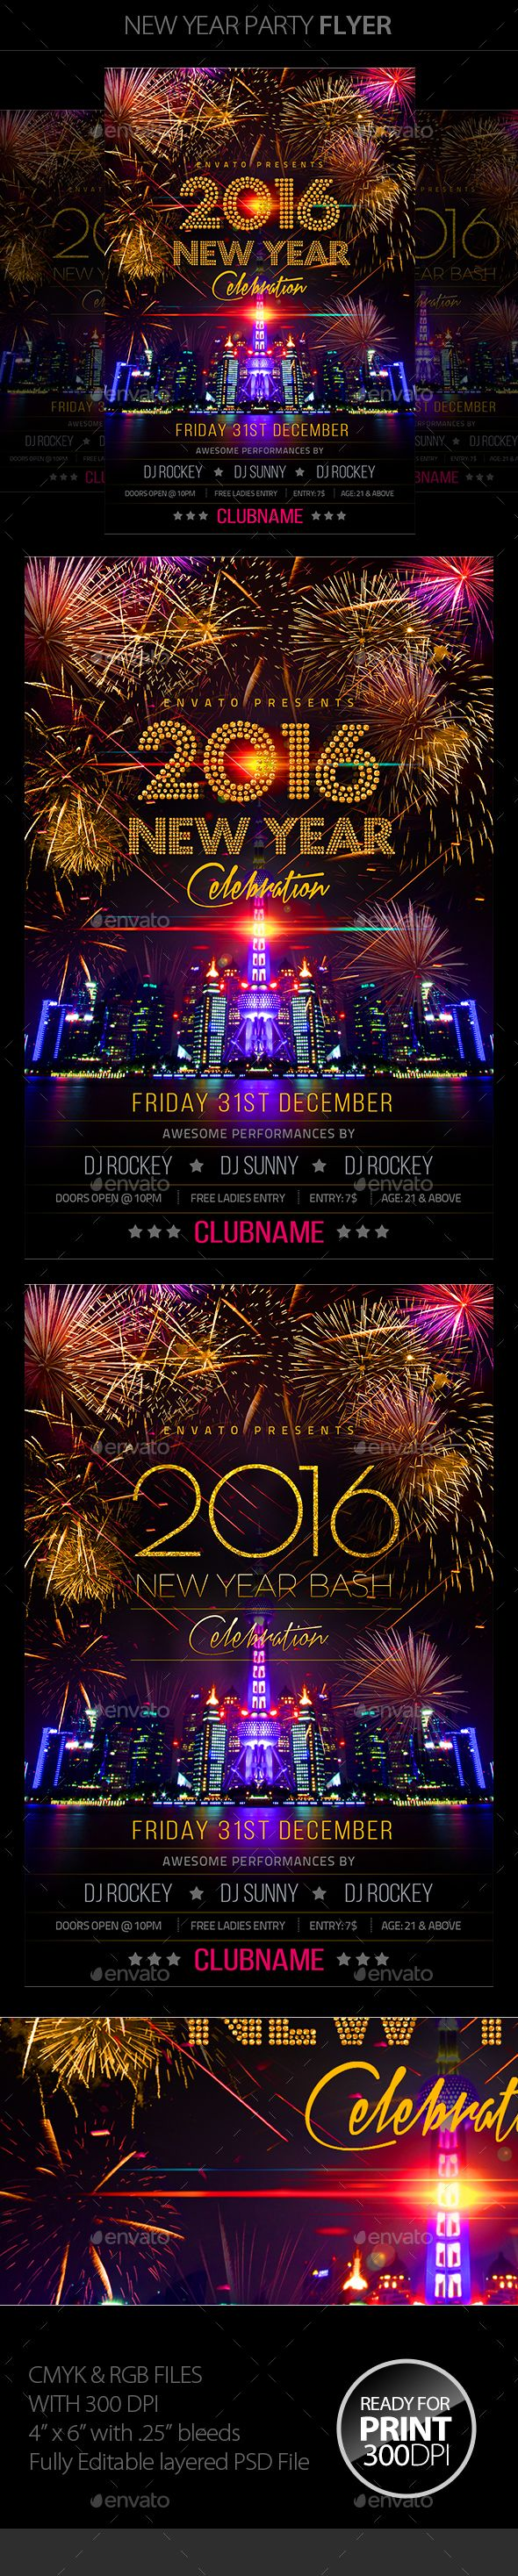 New Year Party Flyer Template PSD #design Download: http://graphicriver.net/item/new-year-party/13670298?ref=ksioks